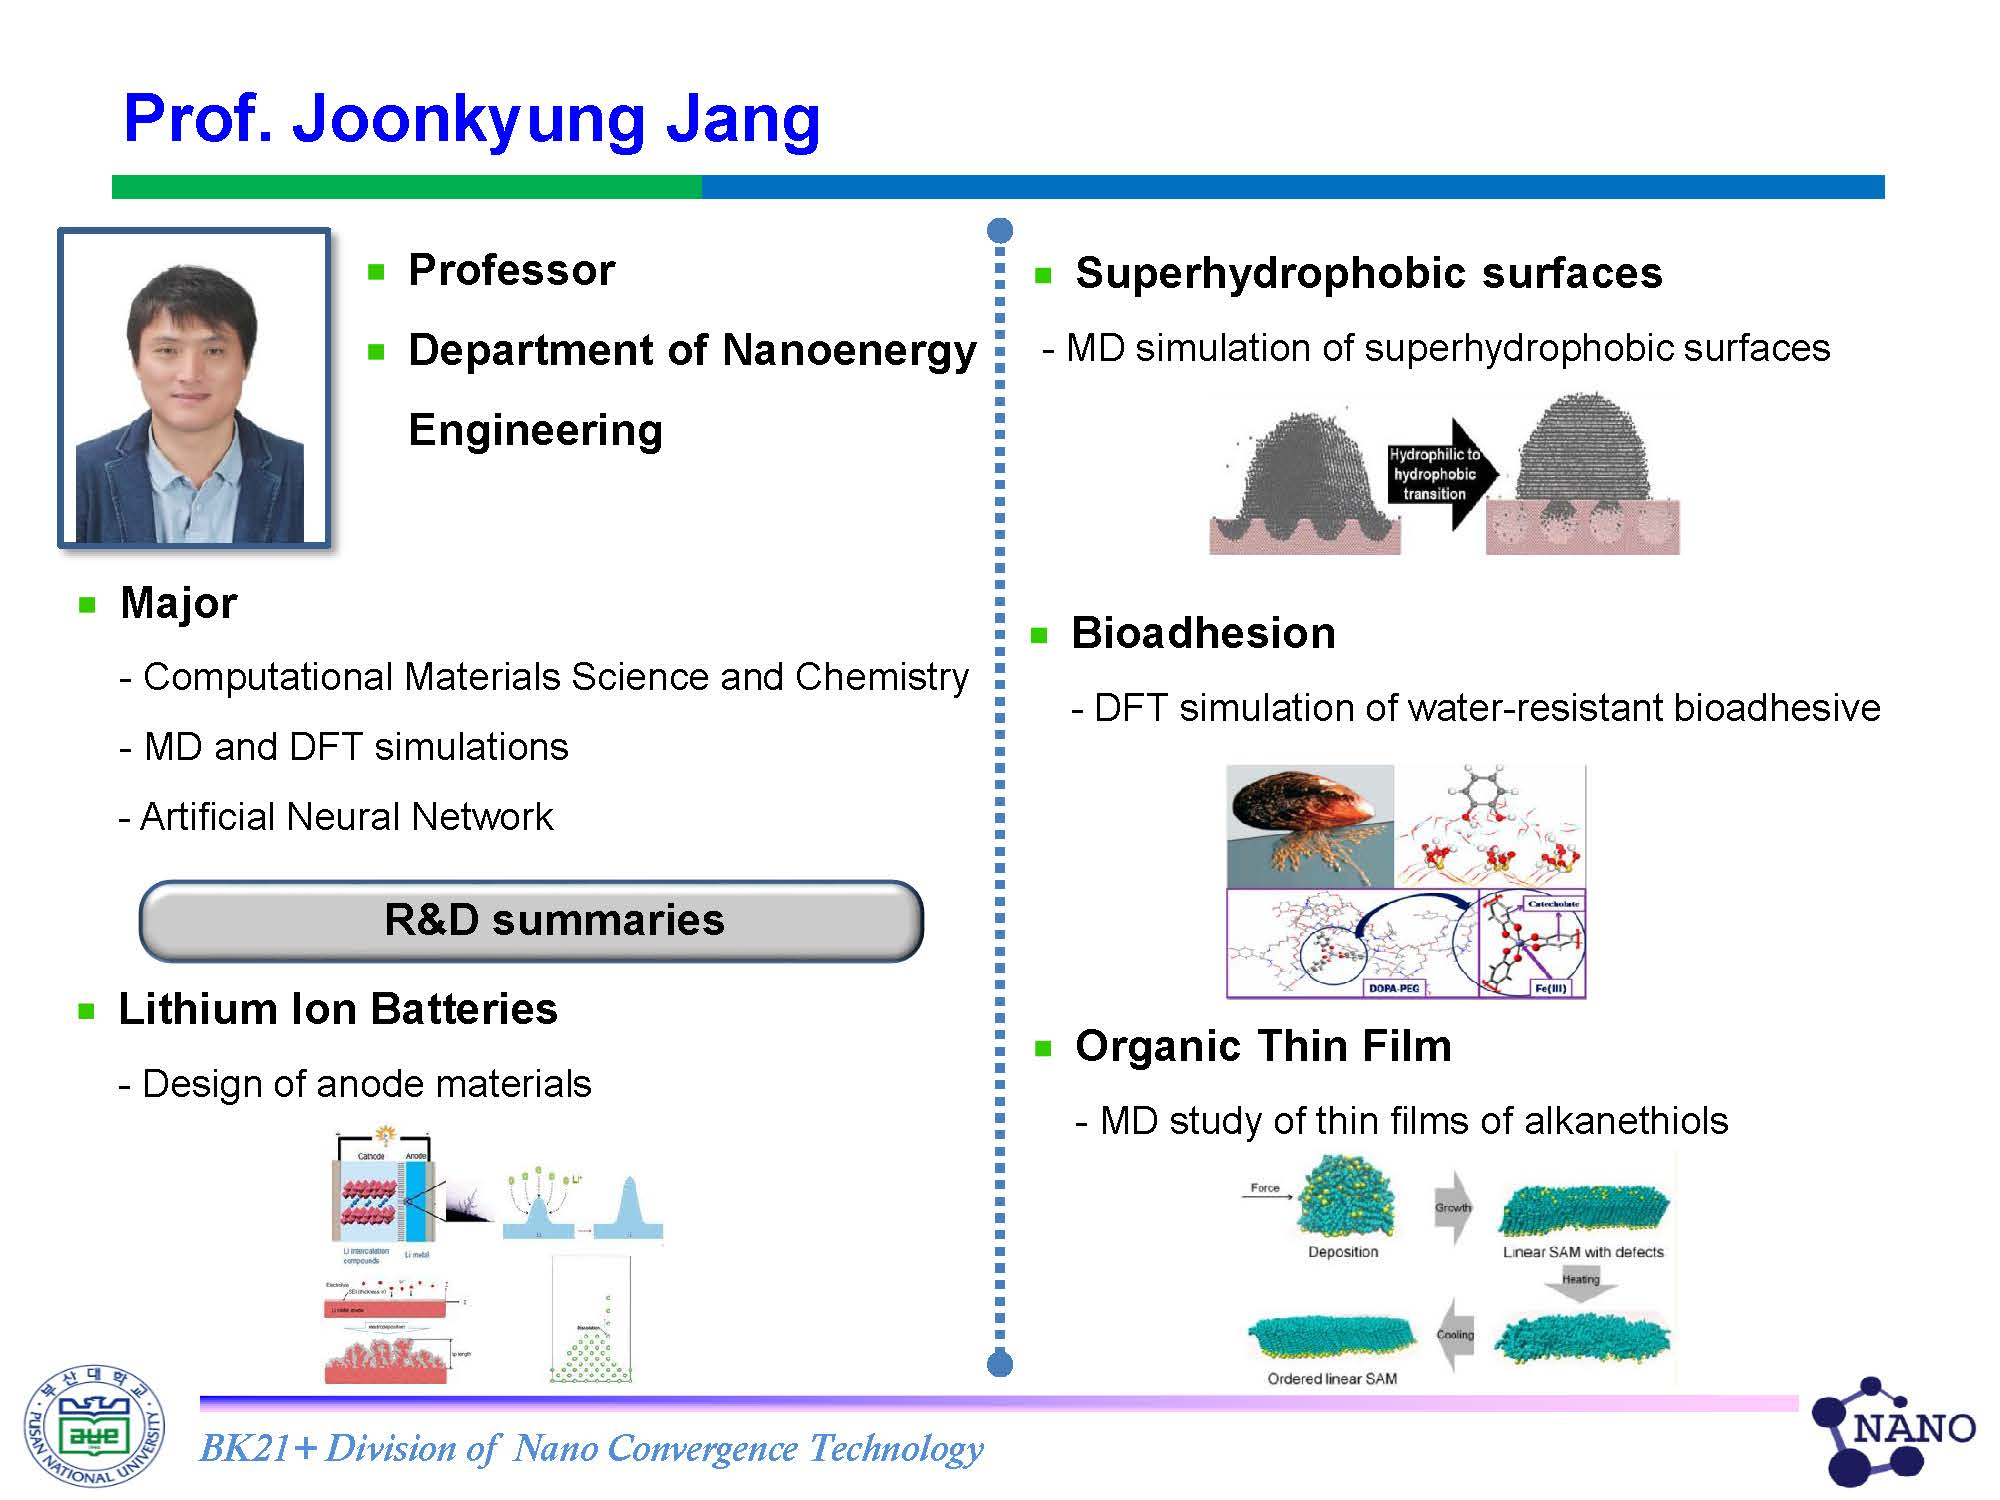 Jang, Joonkyung Nanoenergy Department_research fields_페이지_1.jpg